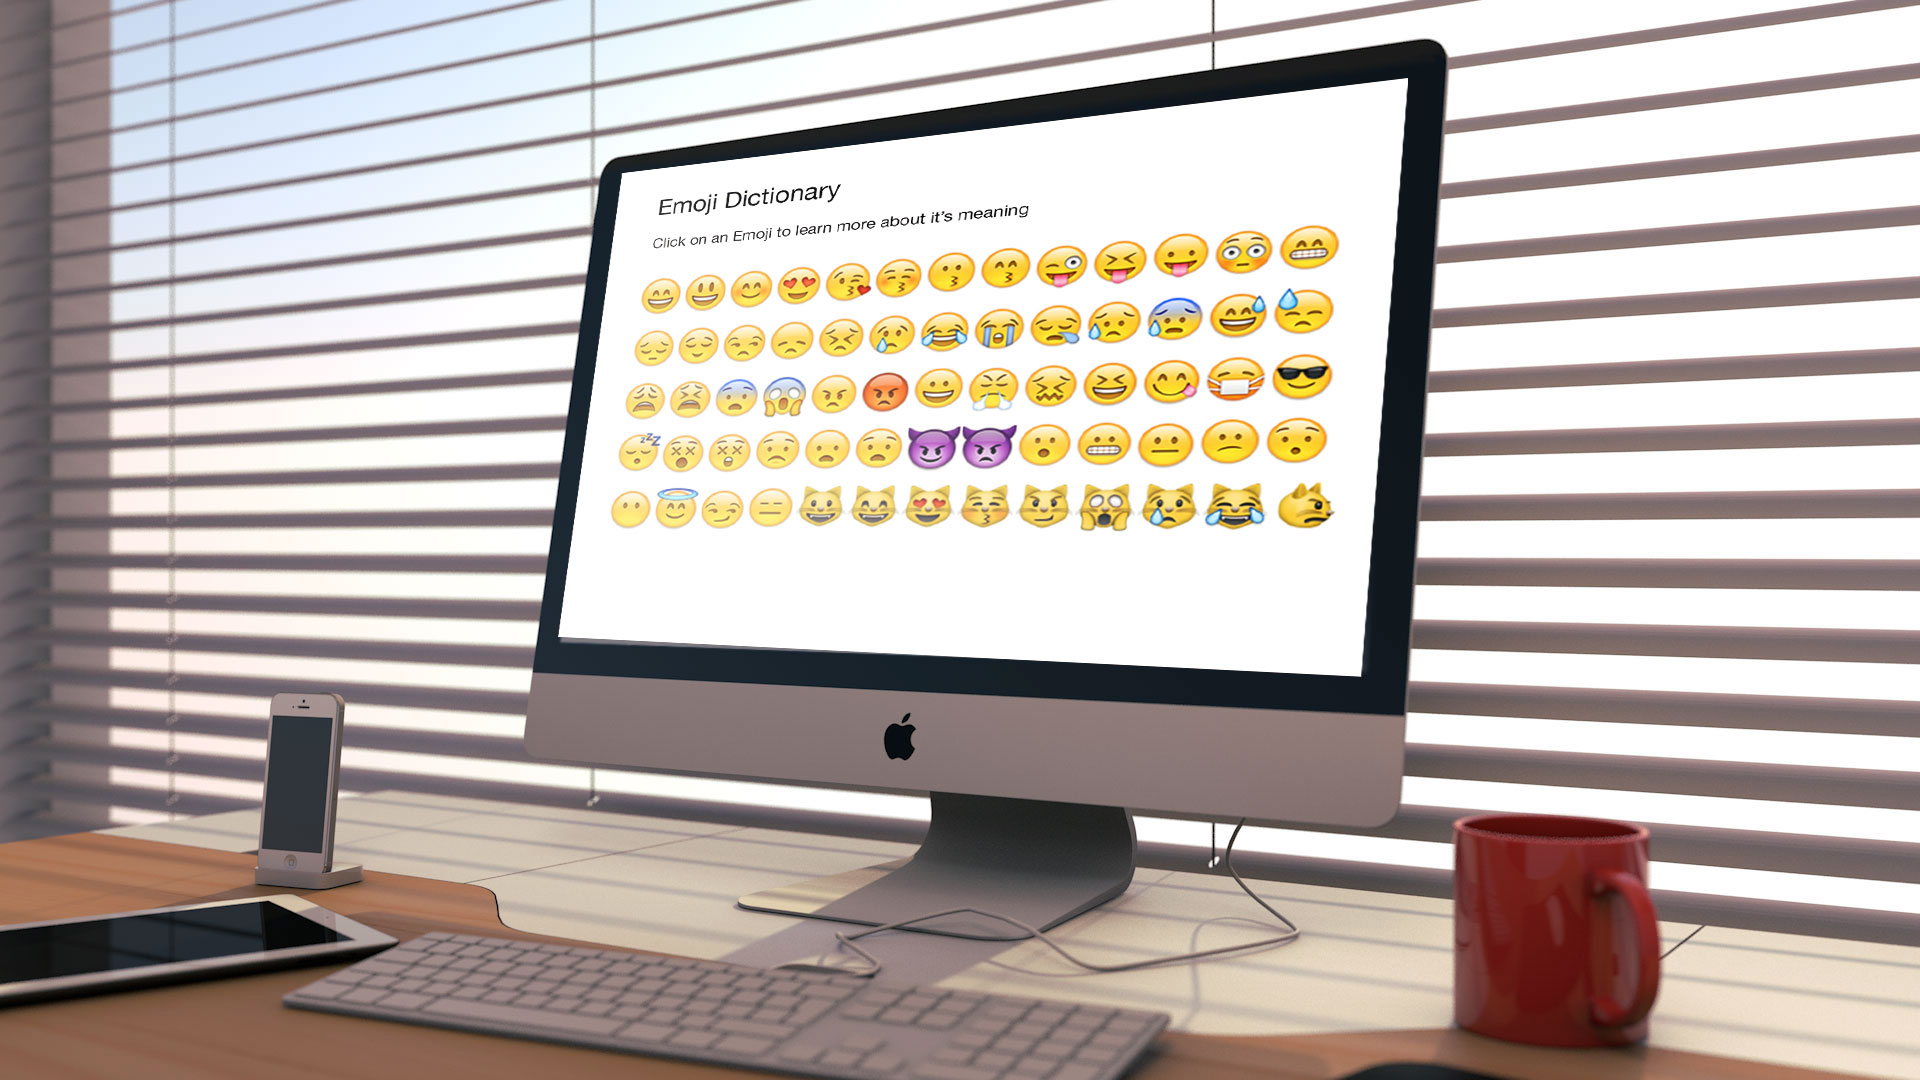 Emoji research emoji foundation as technology advances traditional avenues for connecting with others around us have become more difficult personal visits and aural communication gave buycottarizona